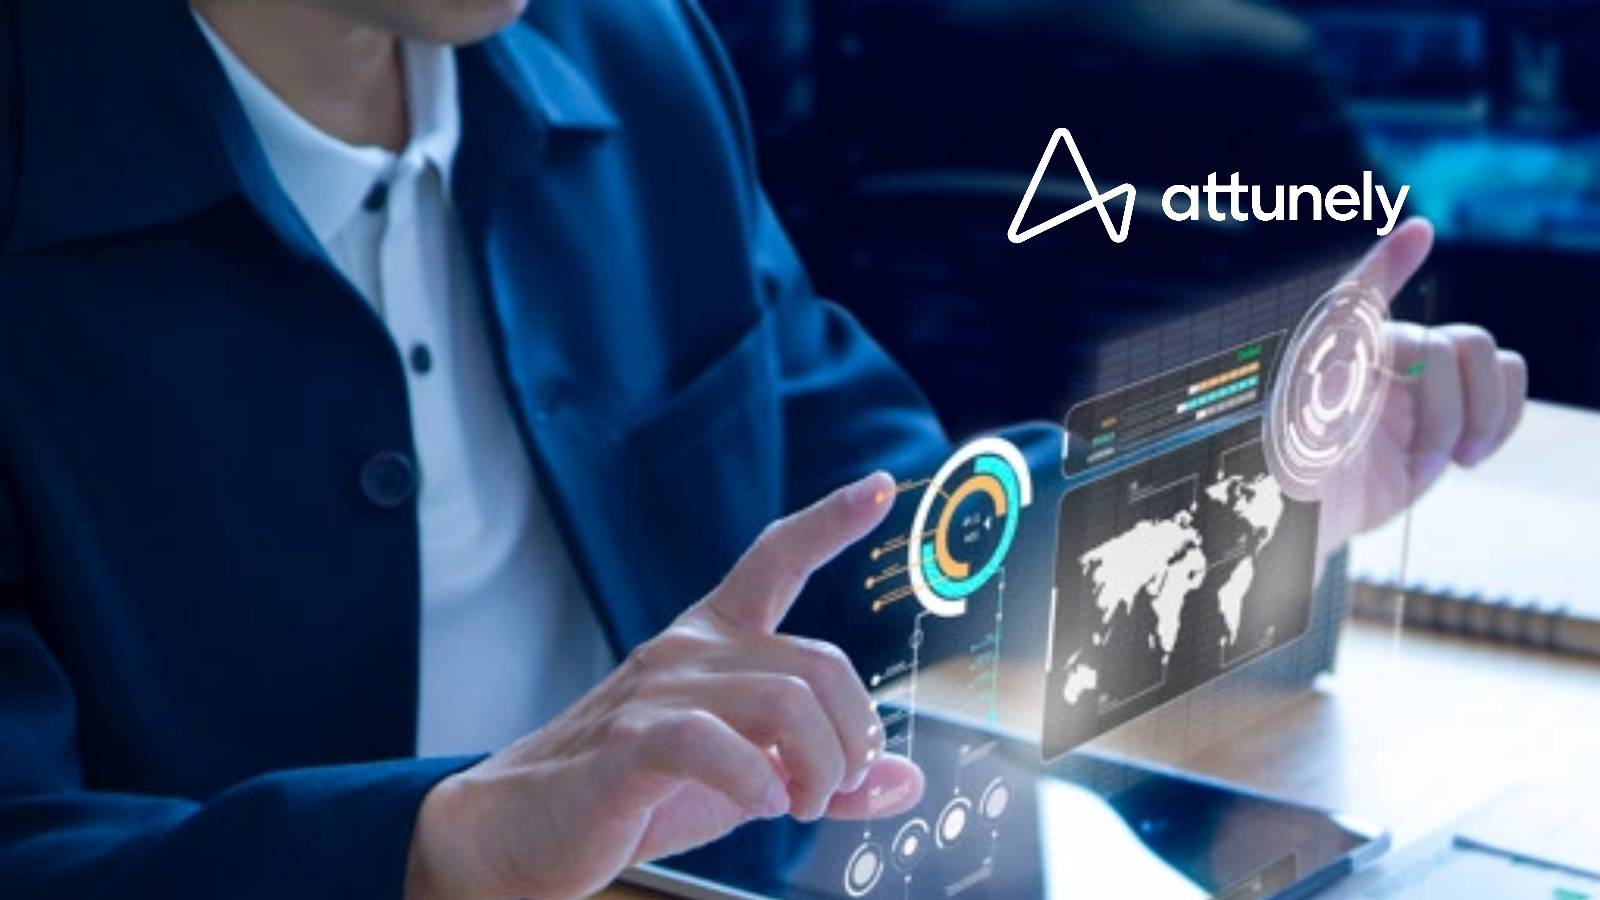 Fintech Machine Learning Leader Attunely Secures $9M in Funding